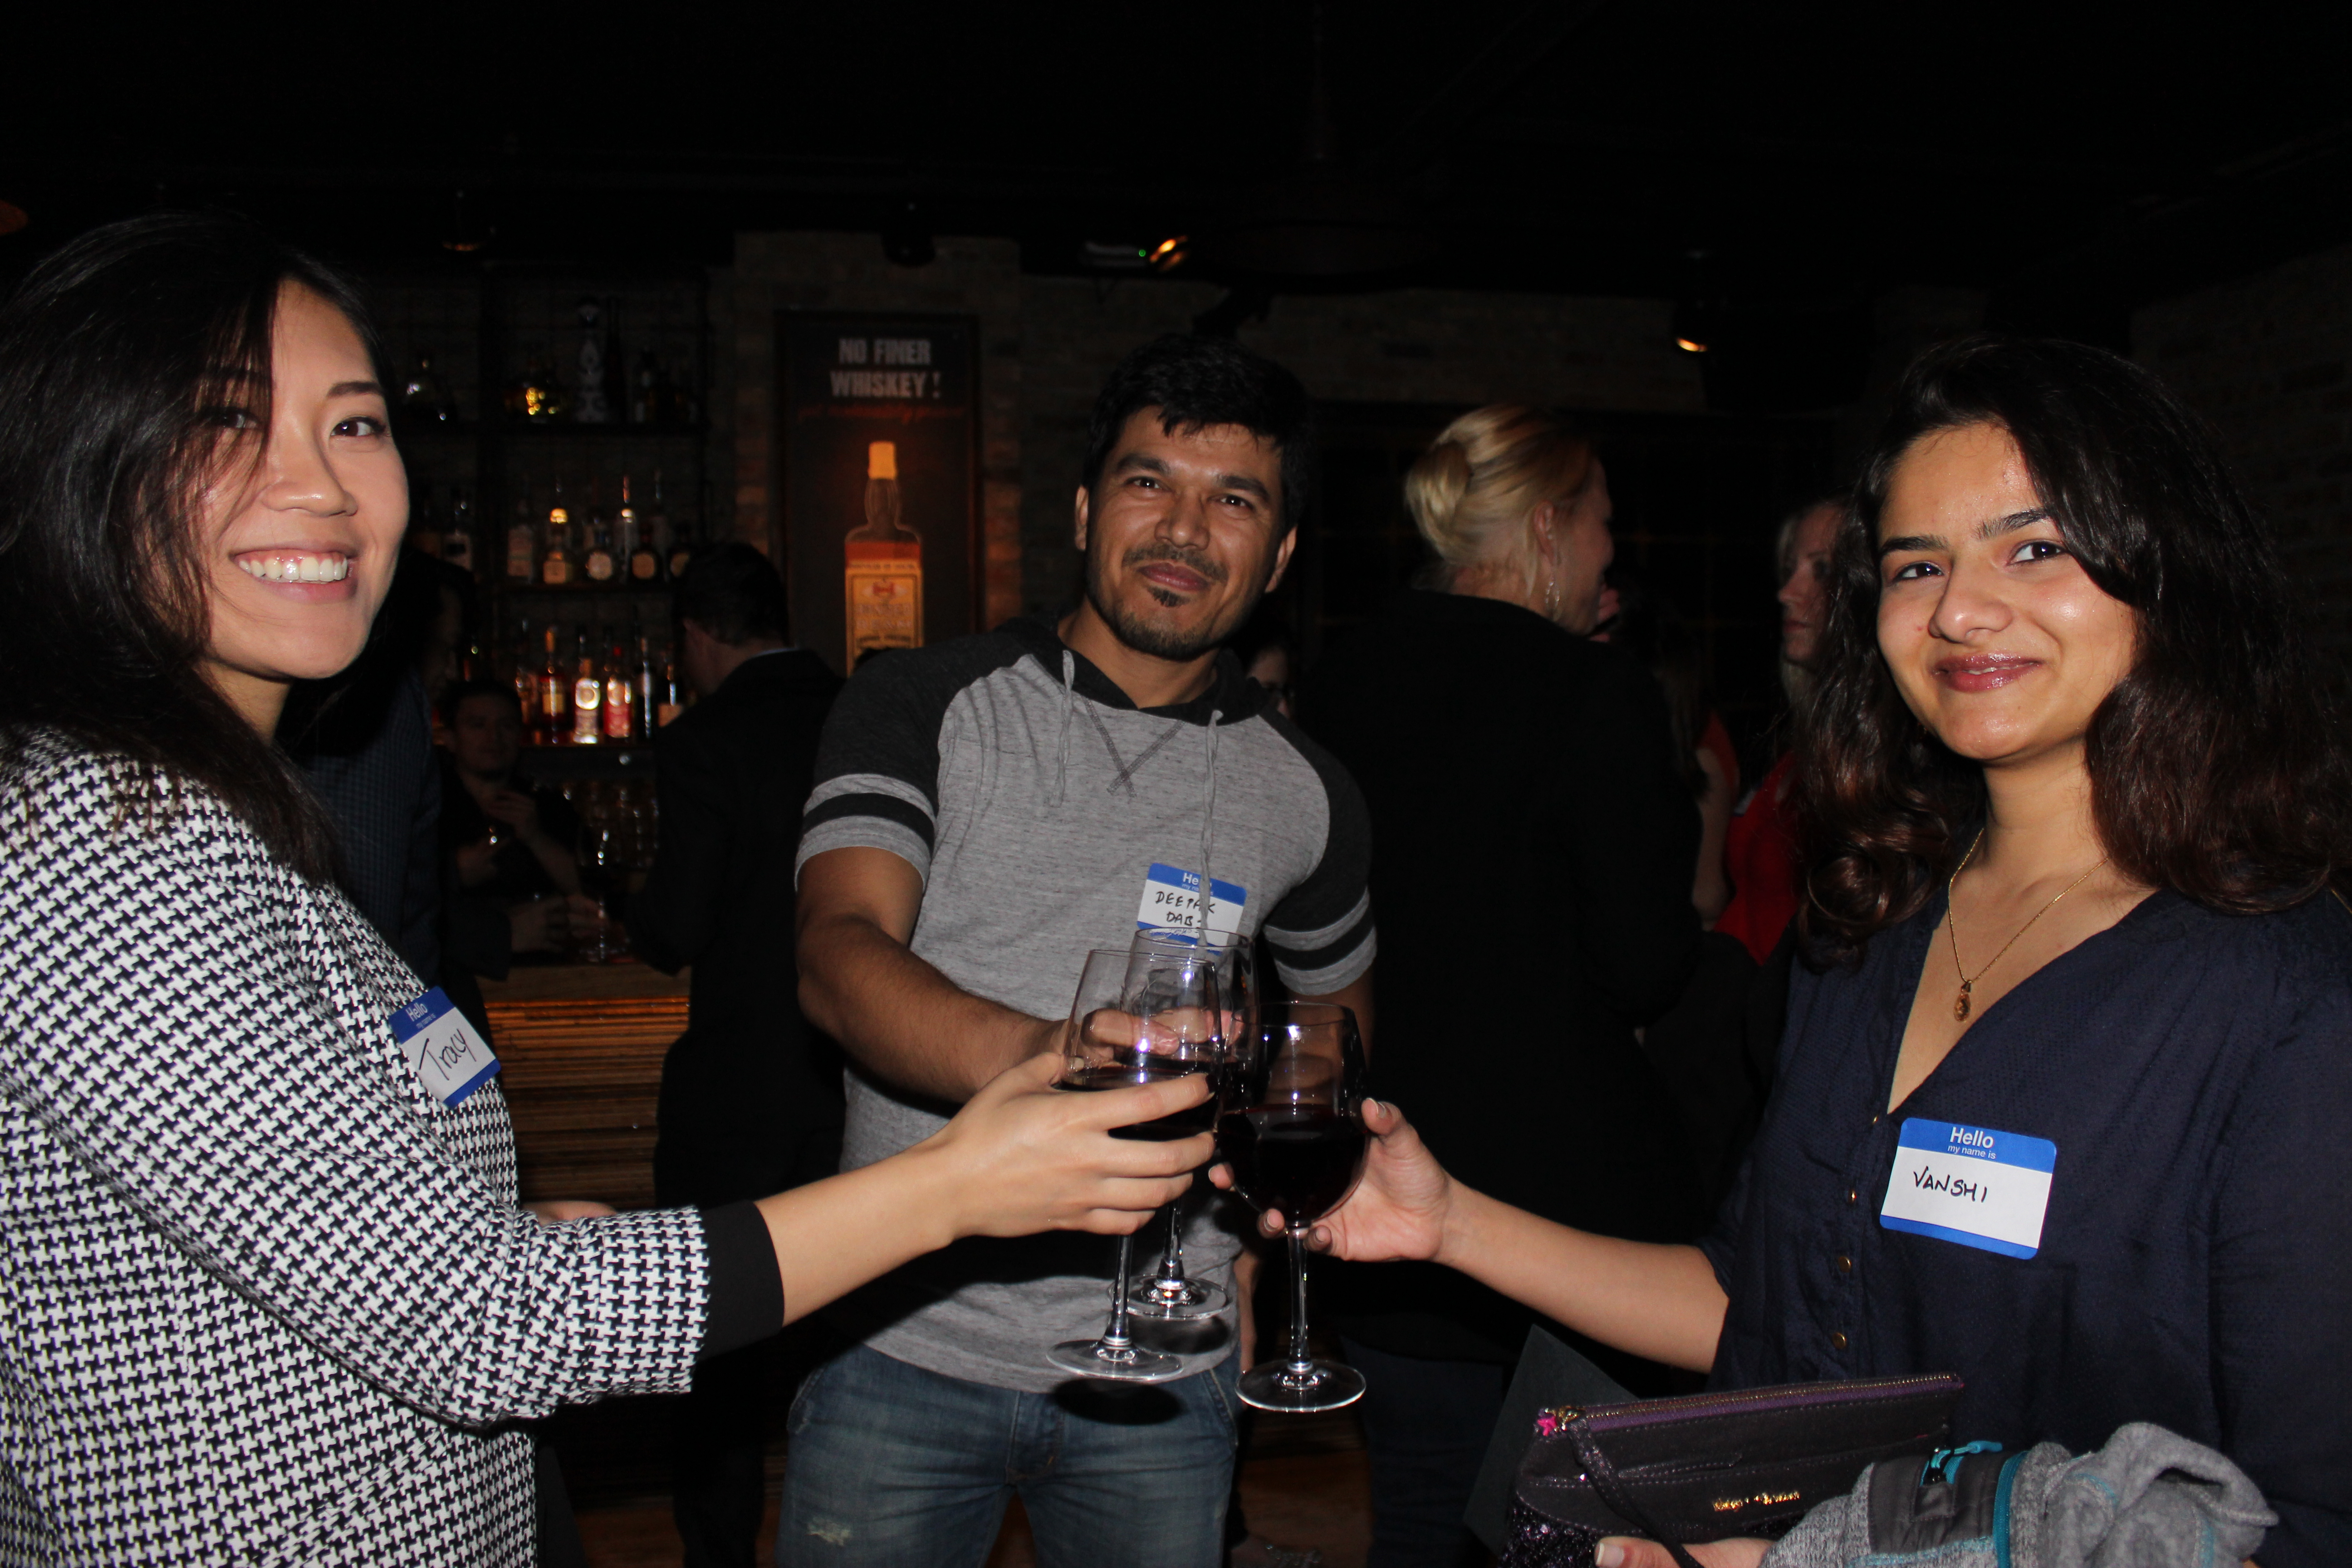 May 9th, Spring Over to Our Networking Event at Untitled!